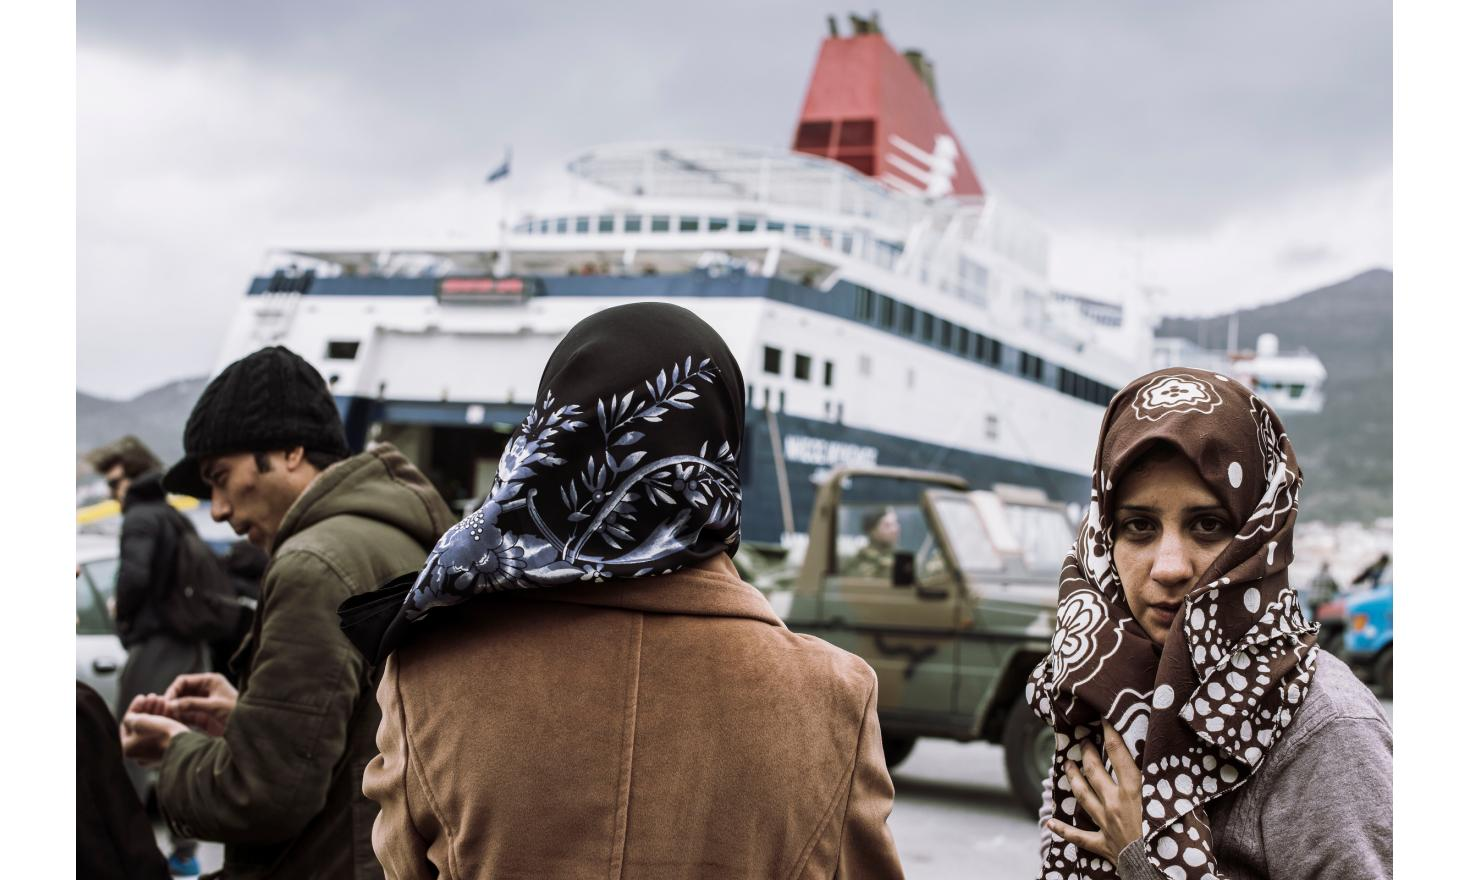 Samos. Refugees waiting for the ferry to Athens